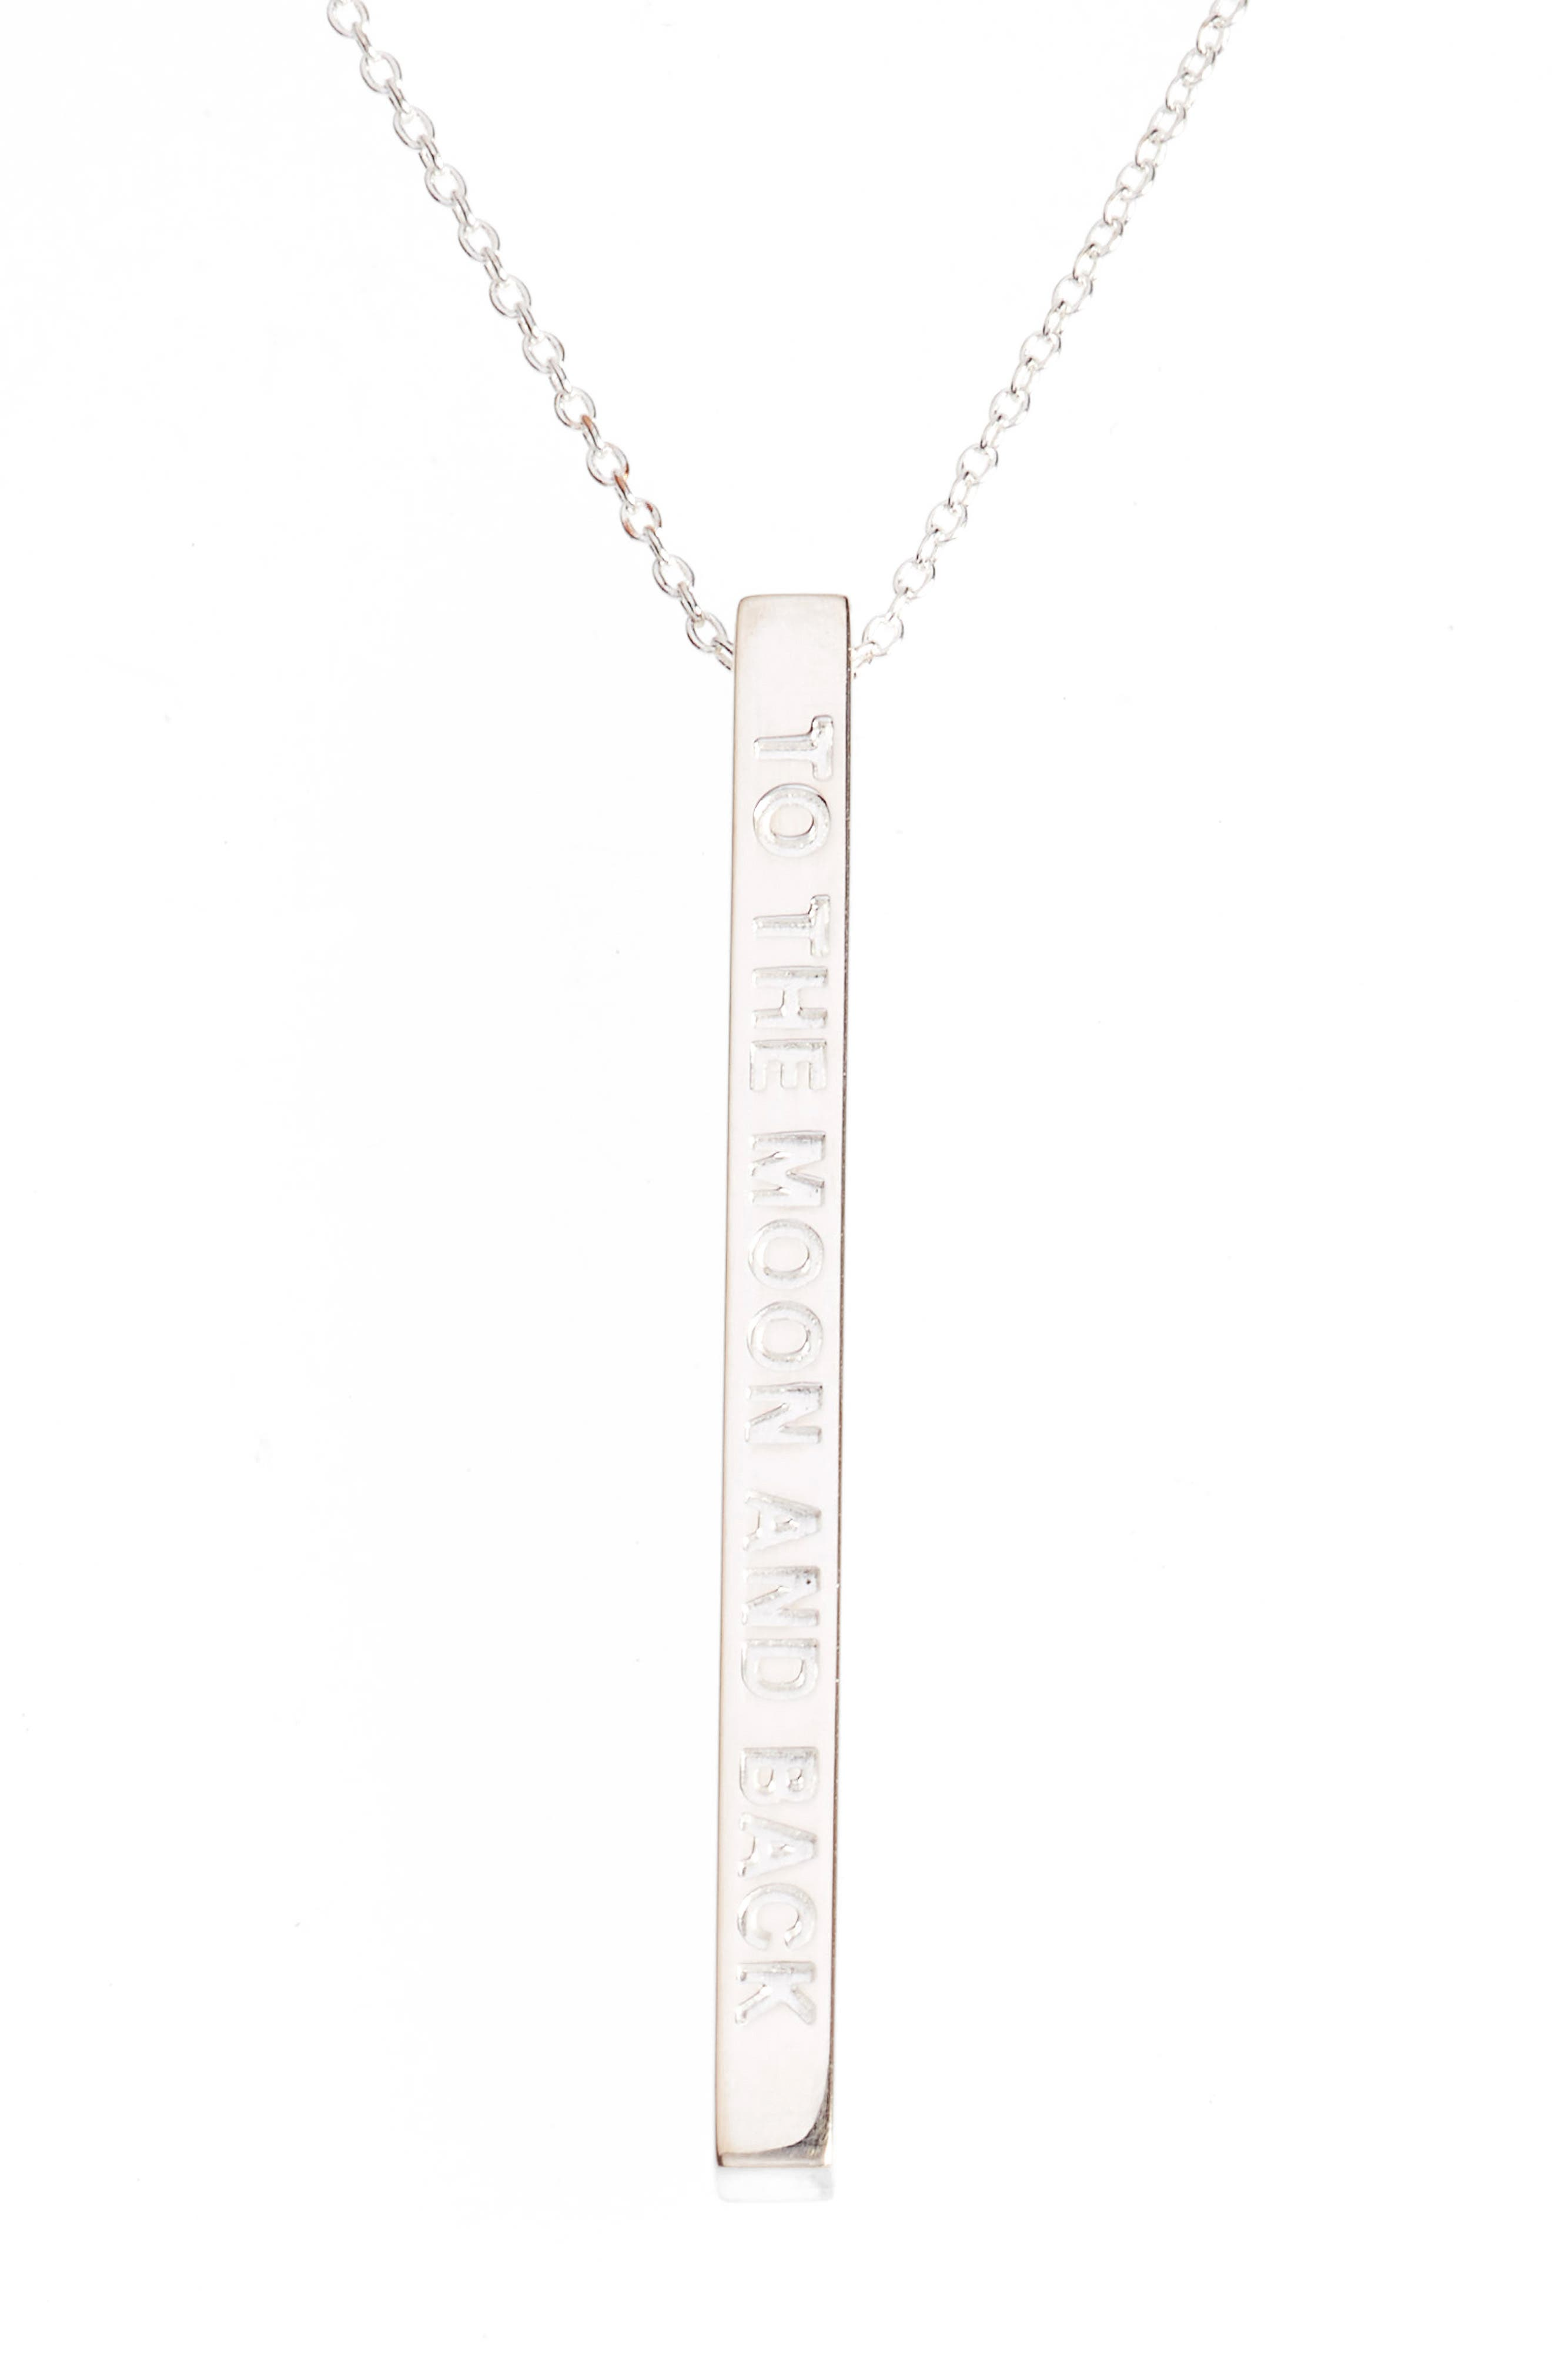 MantraBand® To the Moon & Back Pendant Necklace